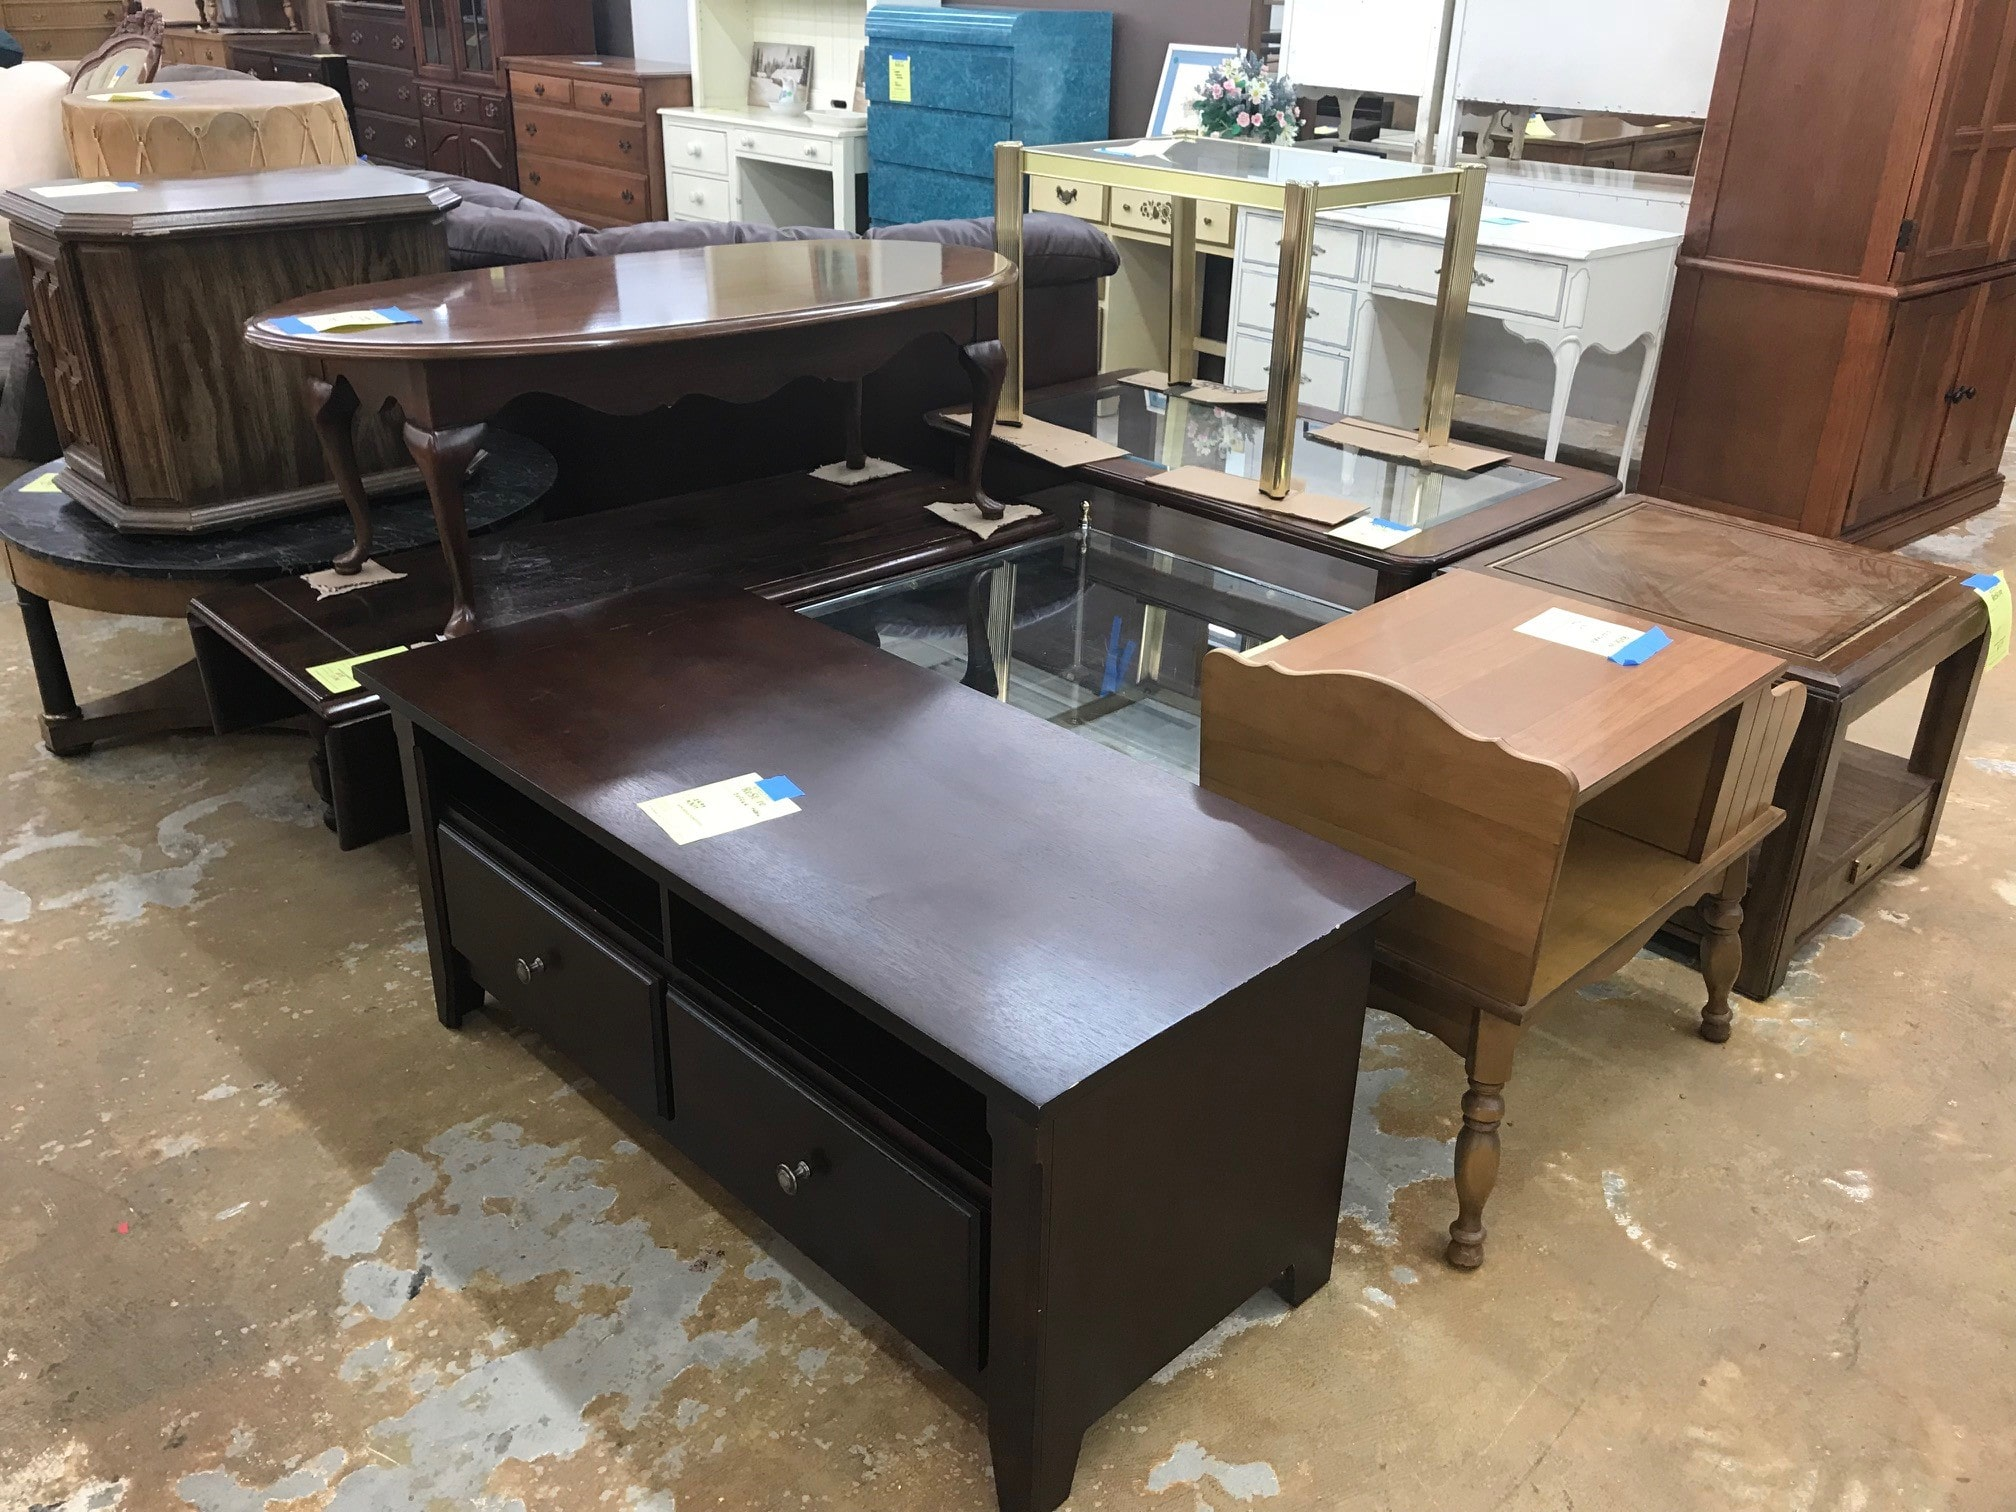 Habitat ReStore Bergen NJ - Furniture for Sale in NJ (33)-min.jpg